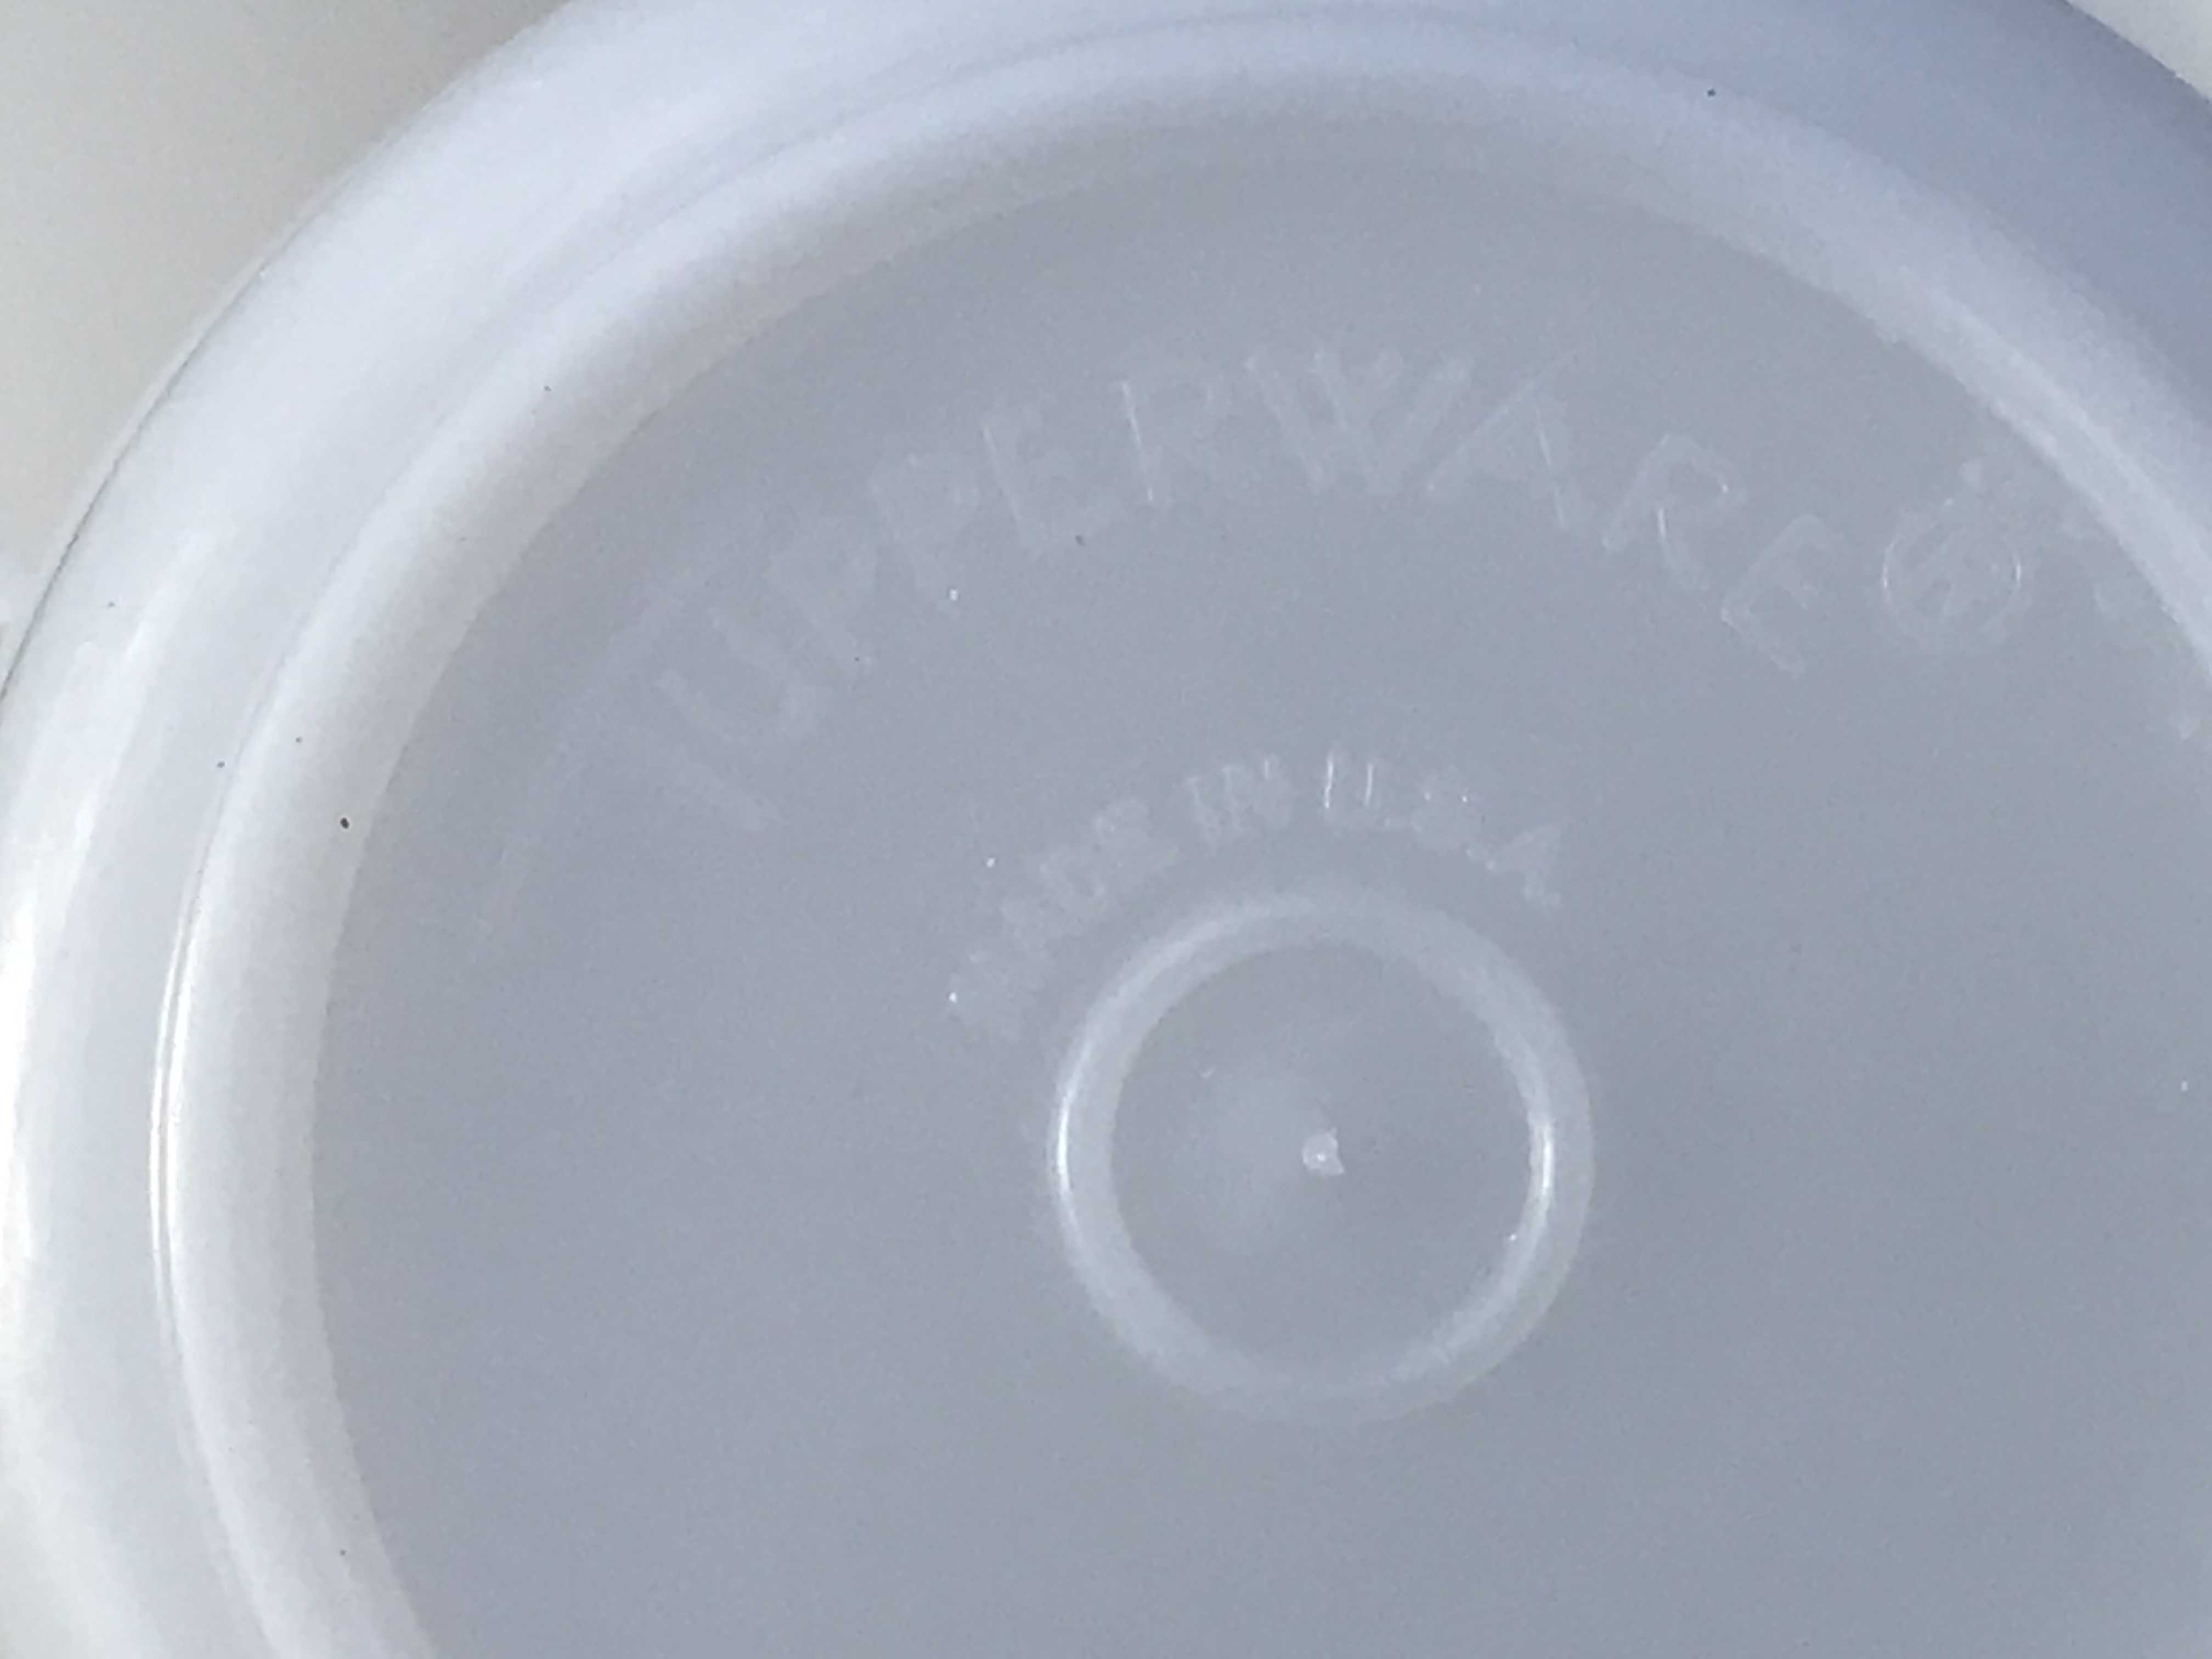 White Tupperware Vintage Measuring Cups: Non-detect for Lead, Mercury, Cadmium and Arsenic.